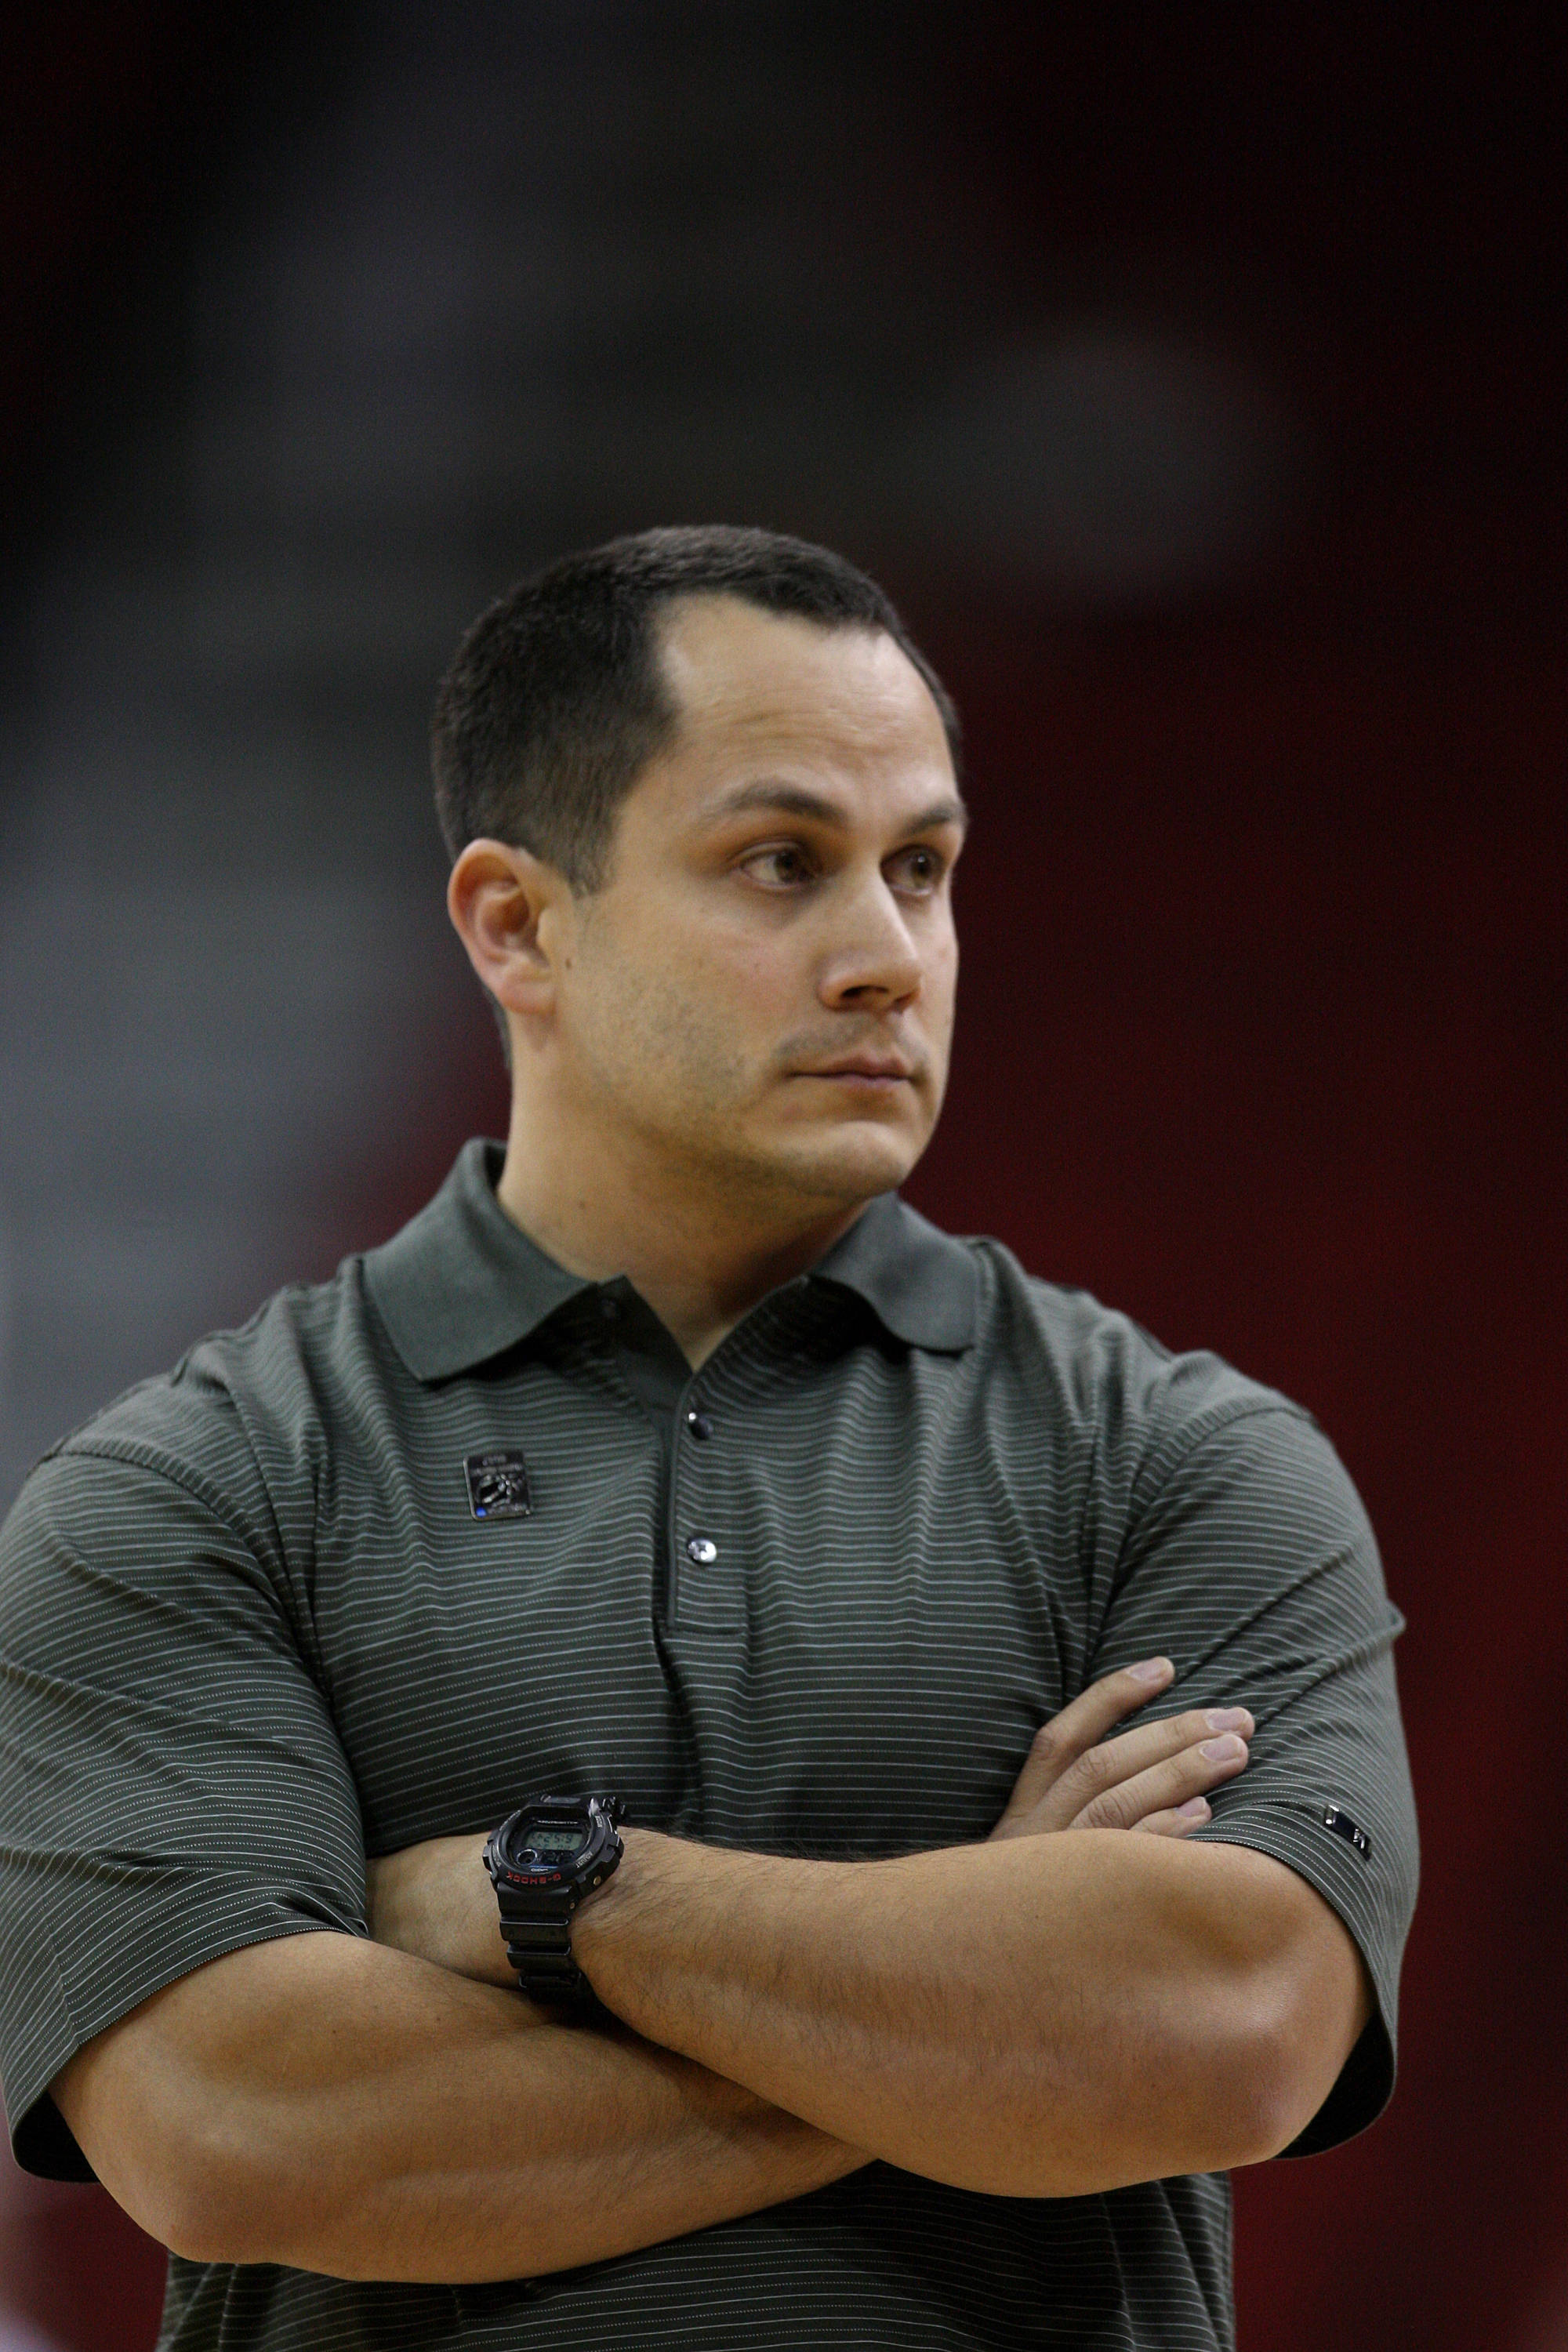 Sept. 9 ... Dave Plettl is one of the top strength and conditioning coaches in America. His hard work with the FSU women's basketball team makes the players quick, conditioned and ready for the rigors of the season.